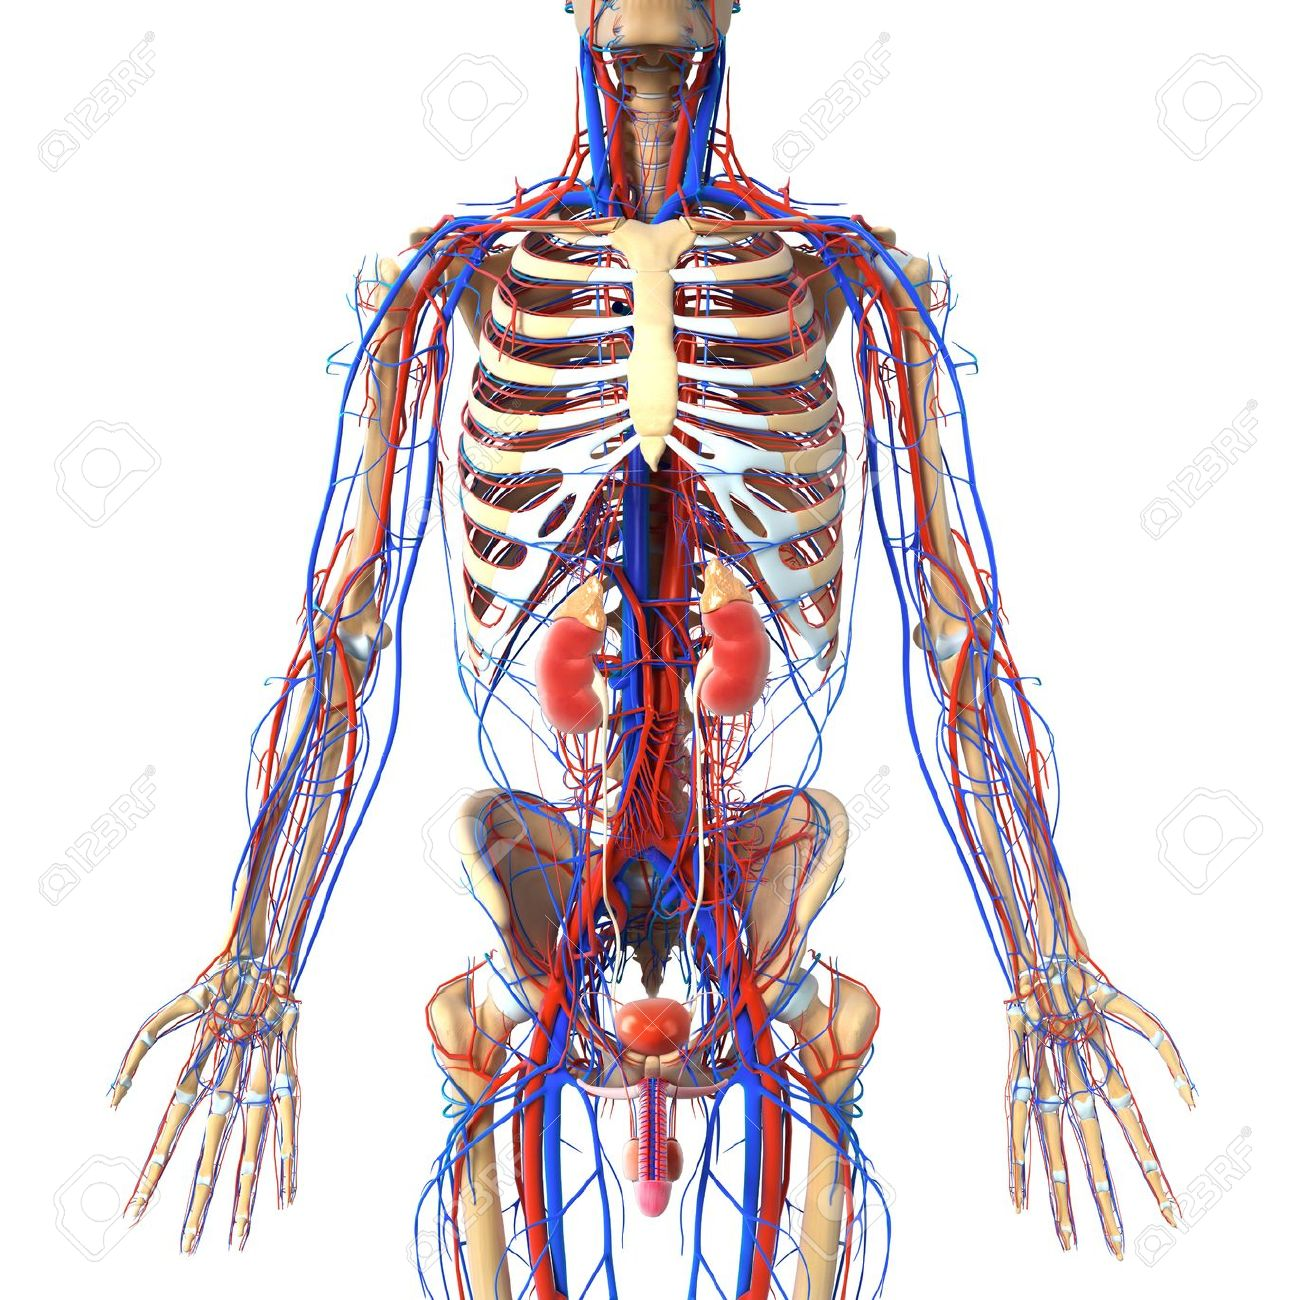 Anatomy Of Urinary System With Veins And Skeleton Stock Photo ...